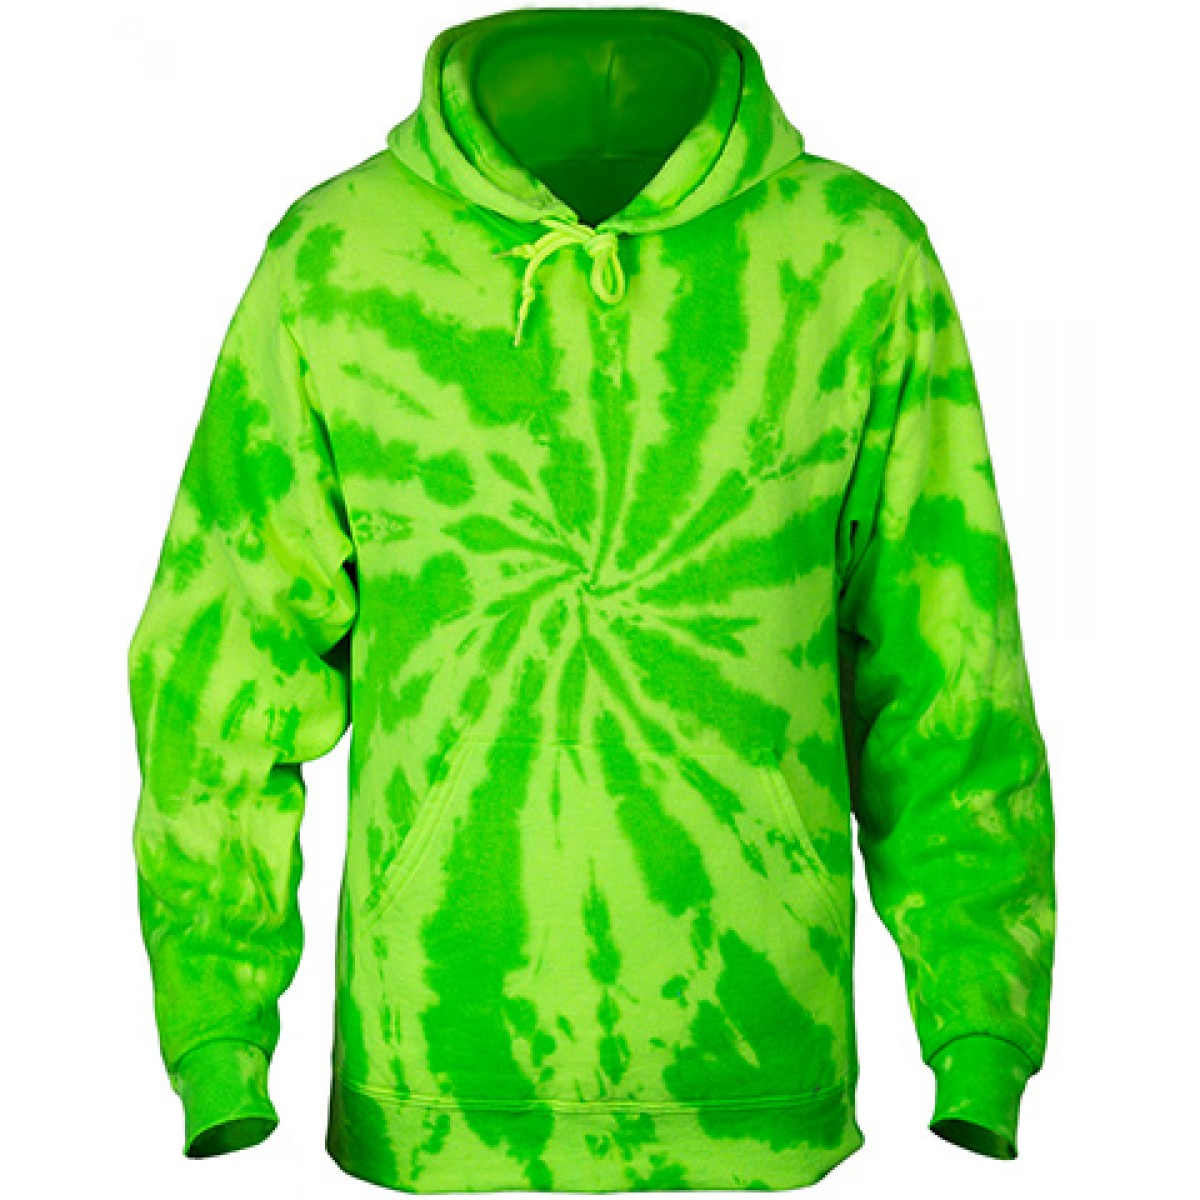 Tie-Dye Pullover Hooded Sweatshirt-Neon Green-YM